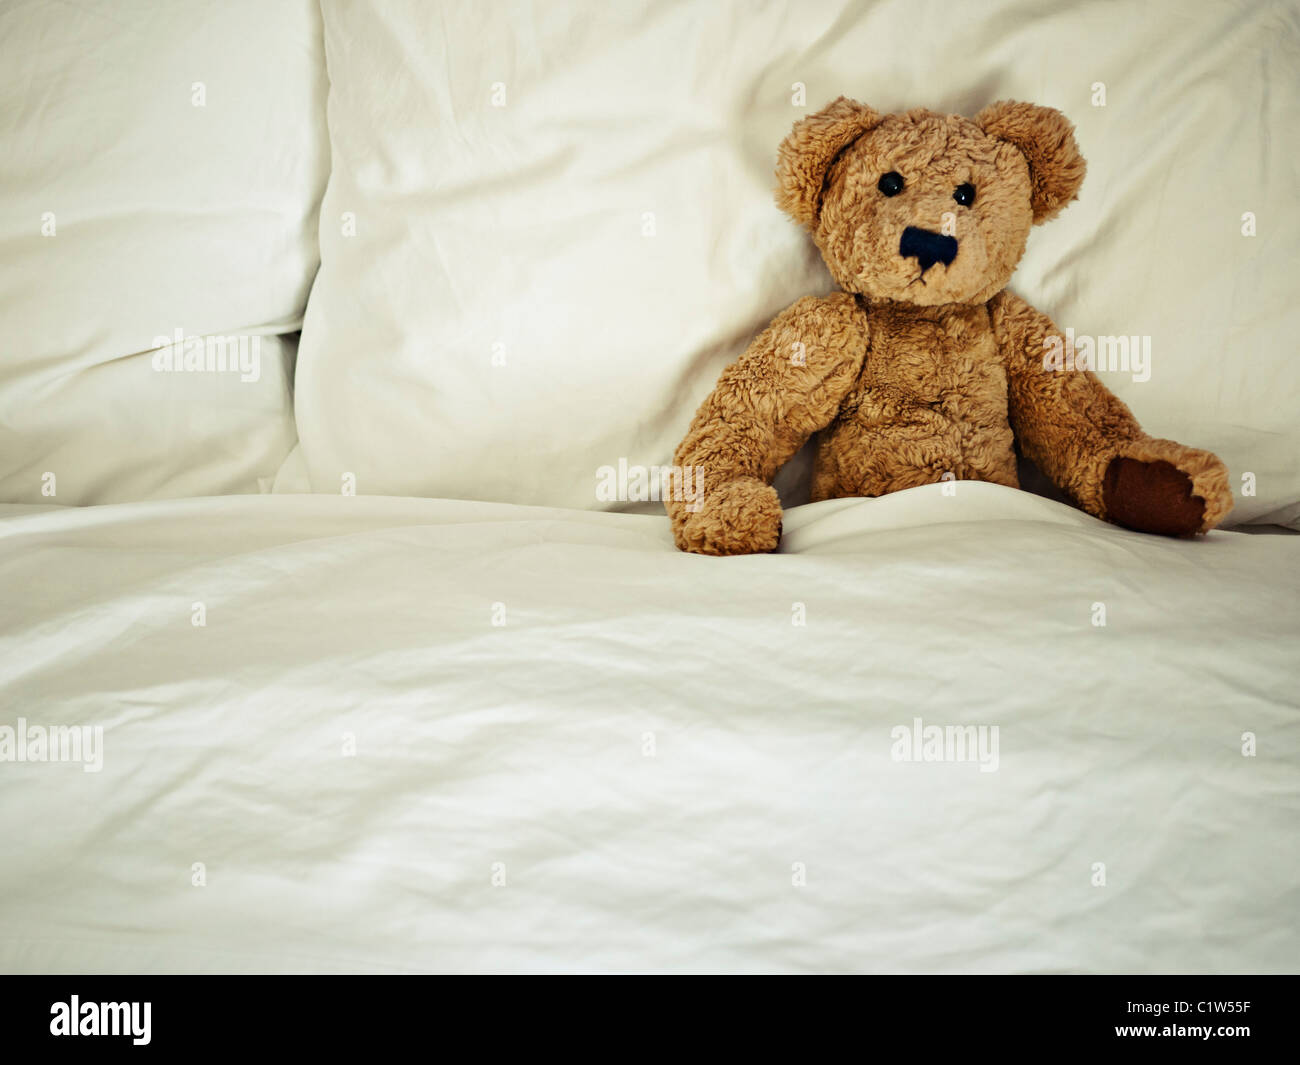 Teddy bear in bed - Stock Image